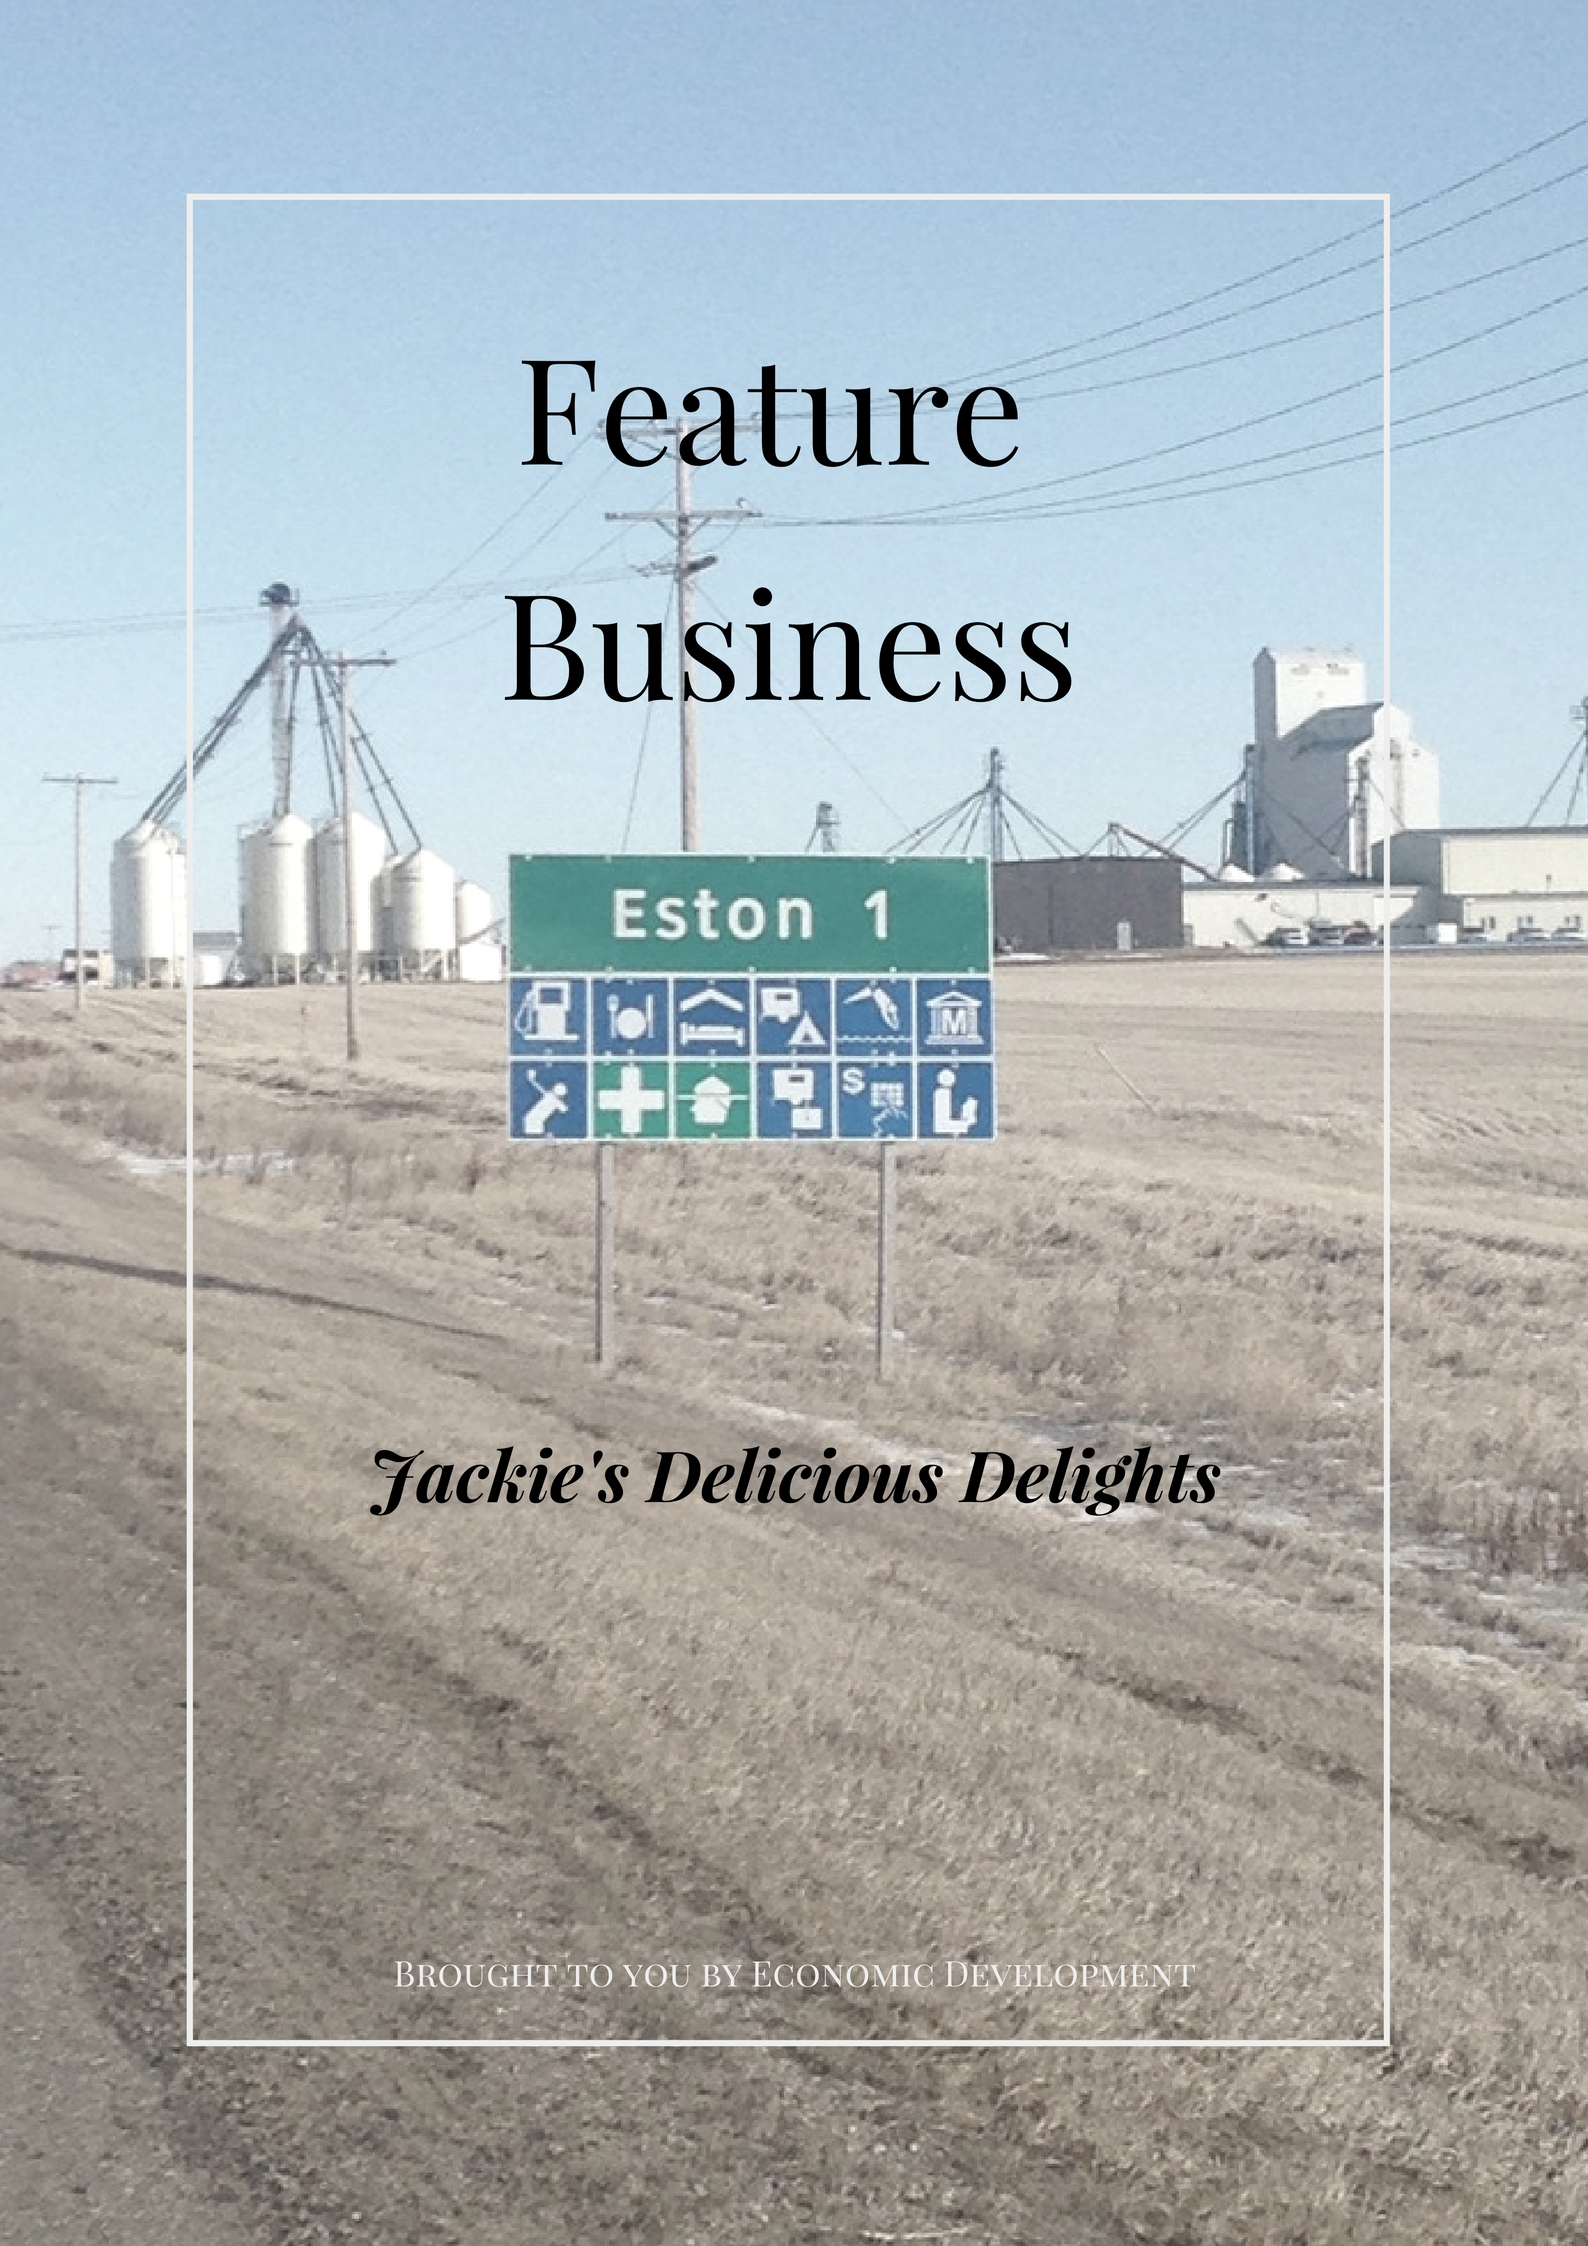 Feature Business